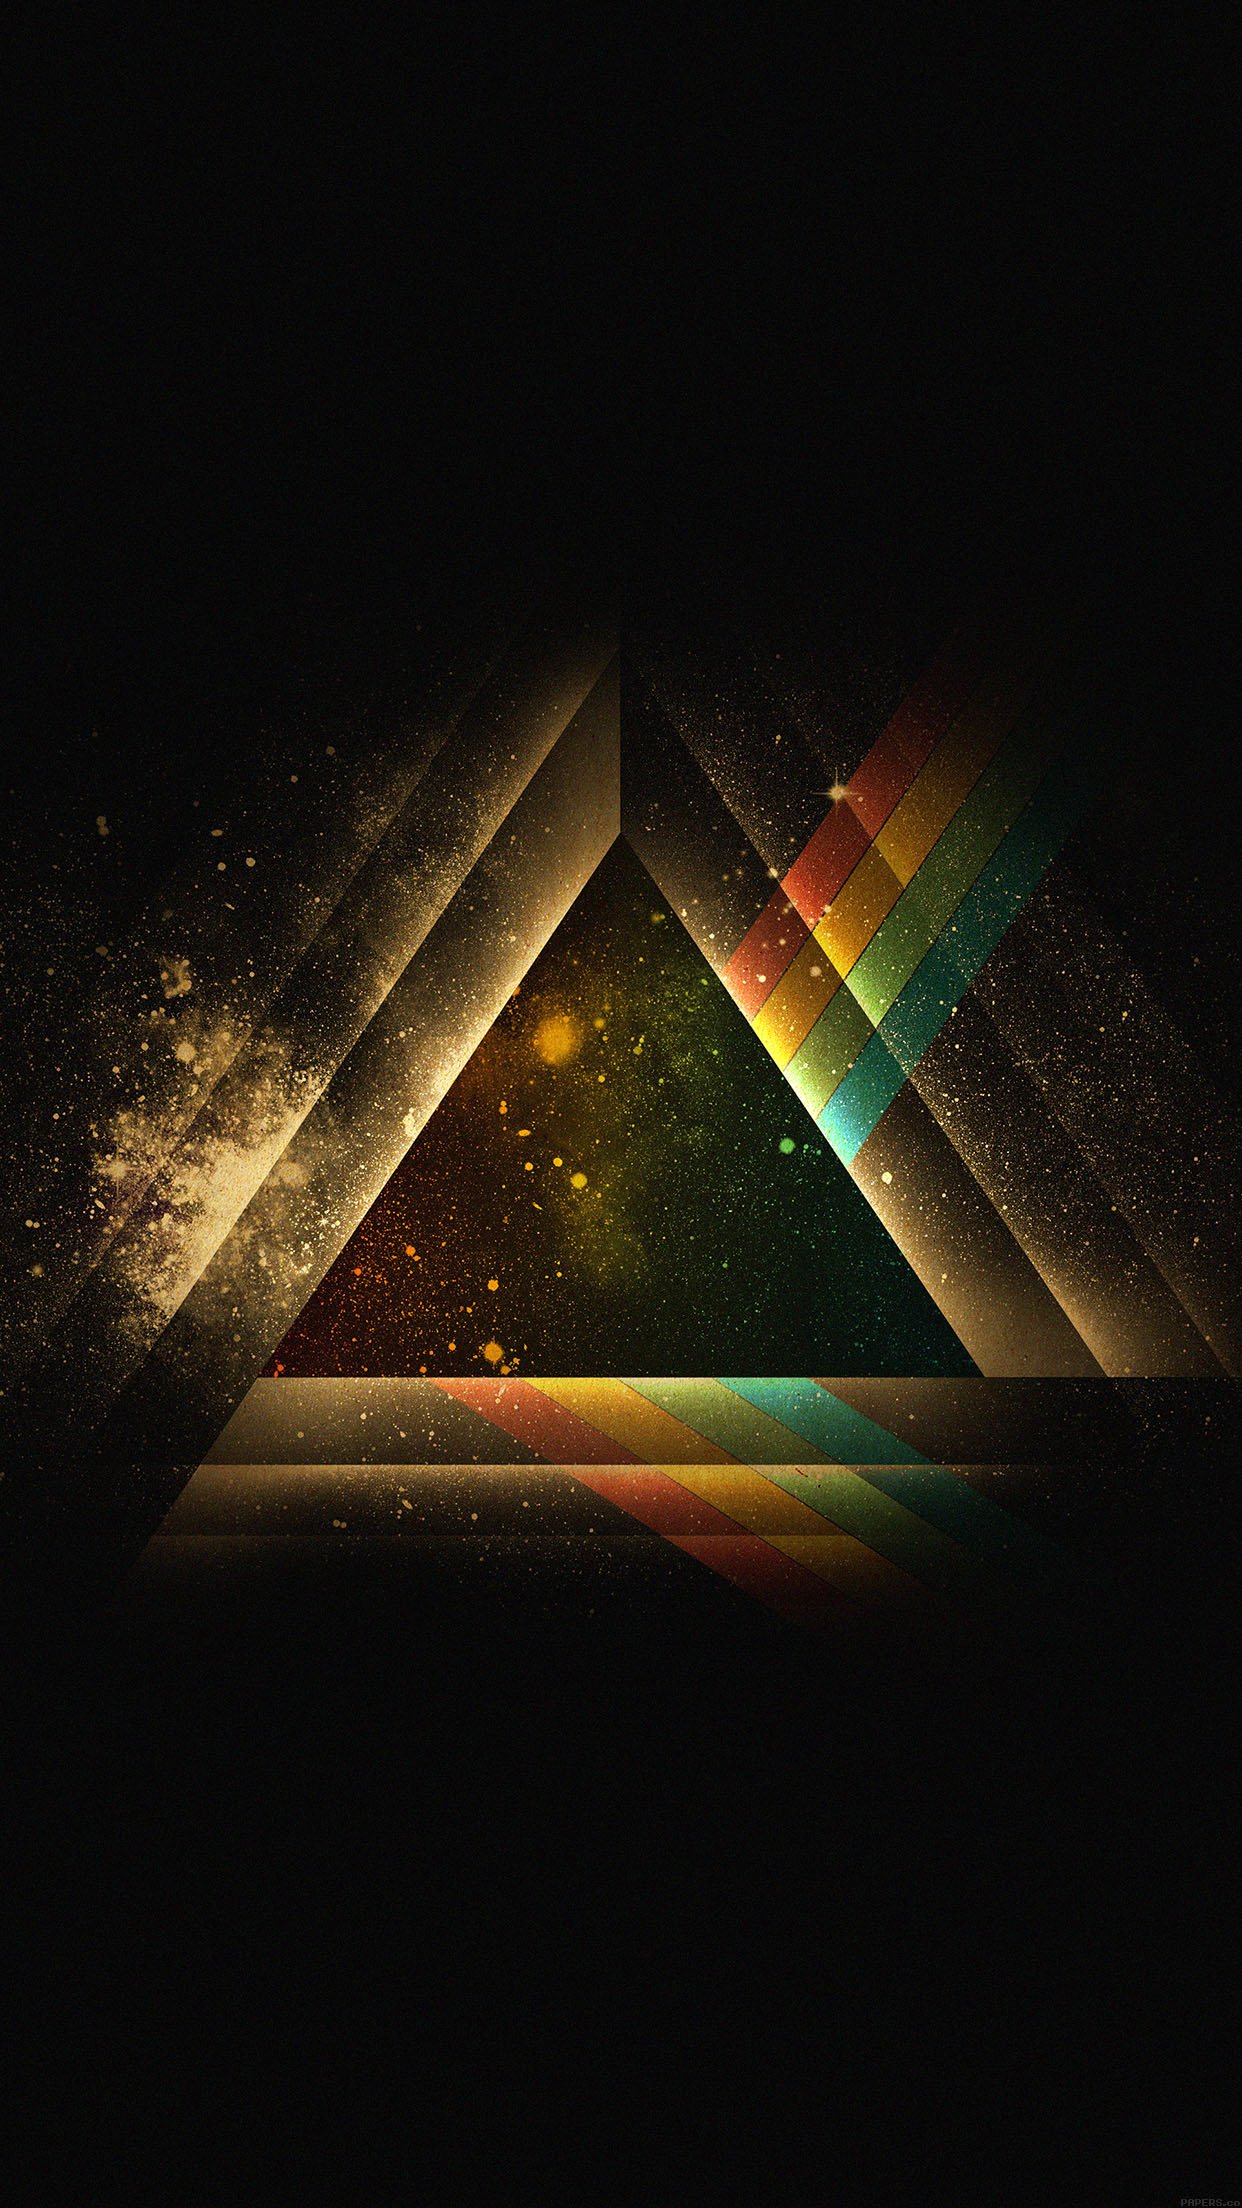 Hd Car Wallpaper For Iphone 6 Ac07 Wallpaper Triangle Art Rainbow Illust Graphic Papers Co